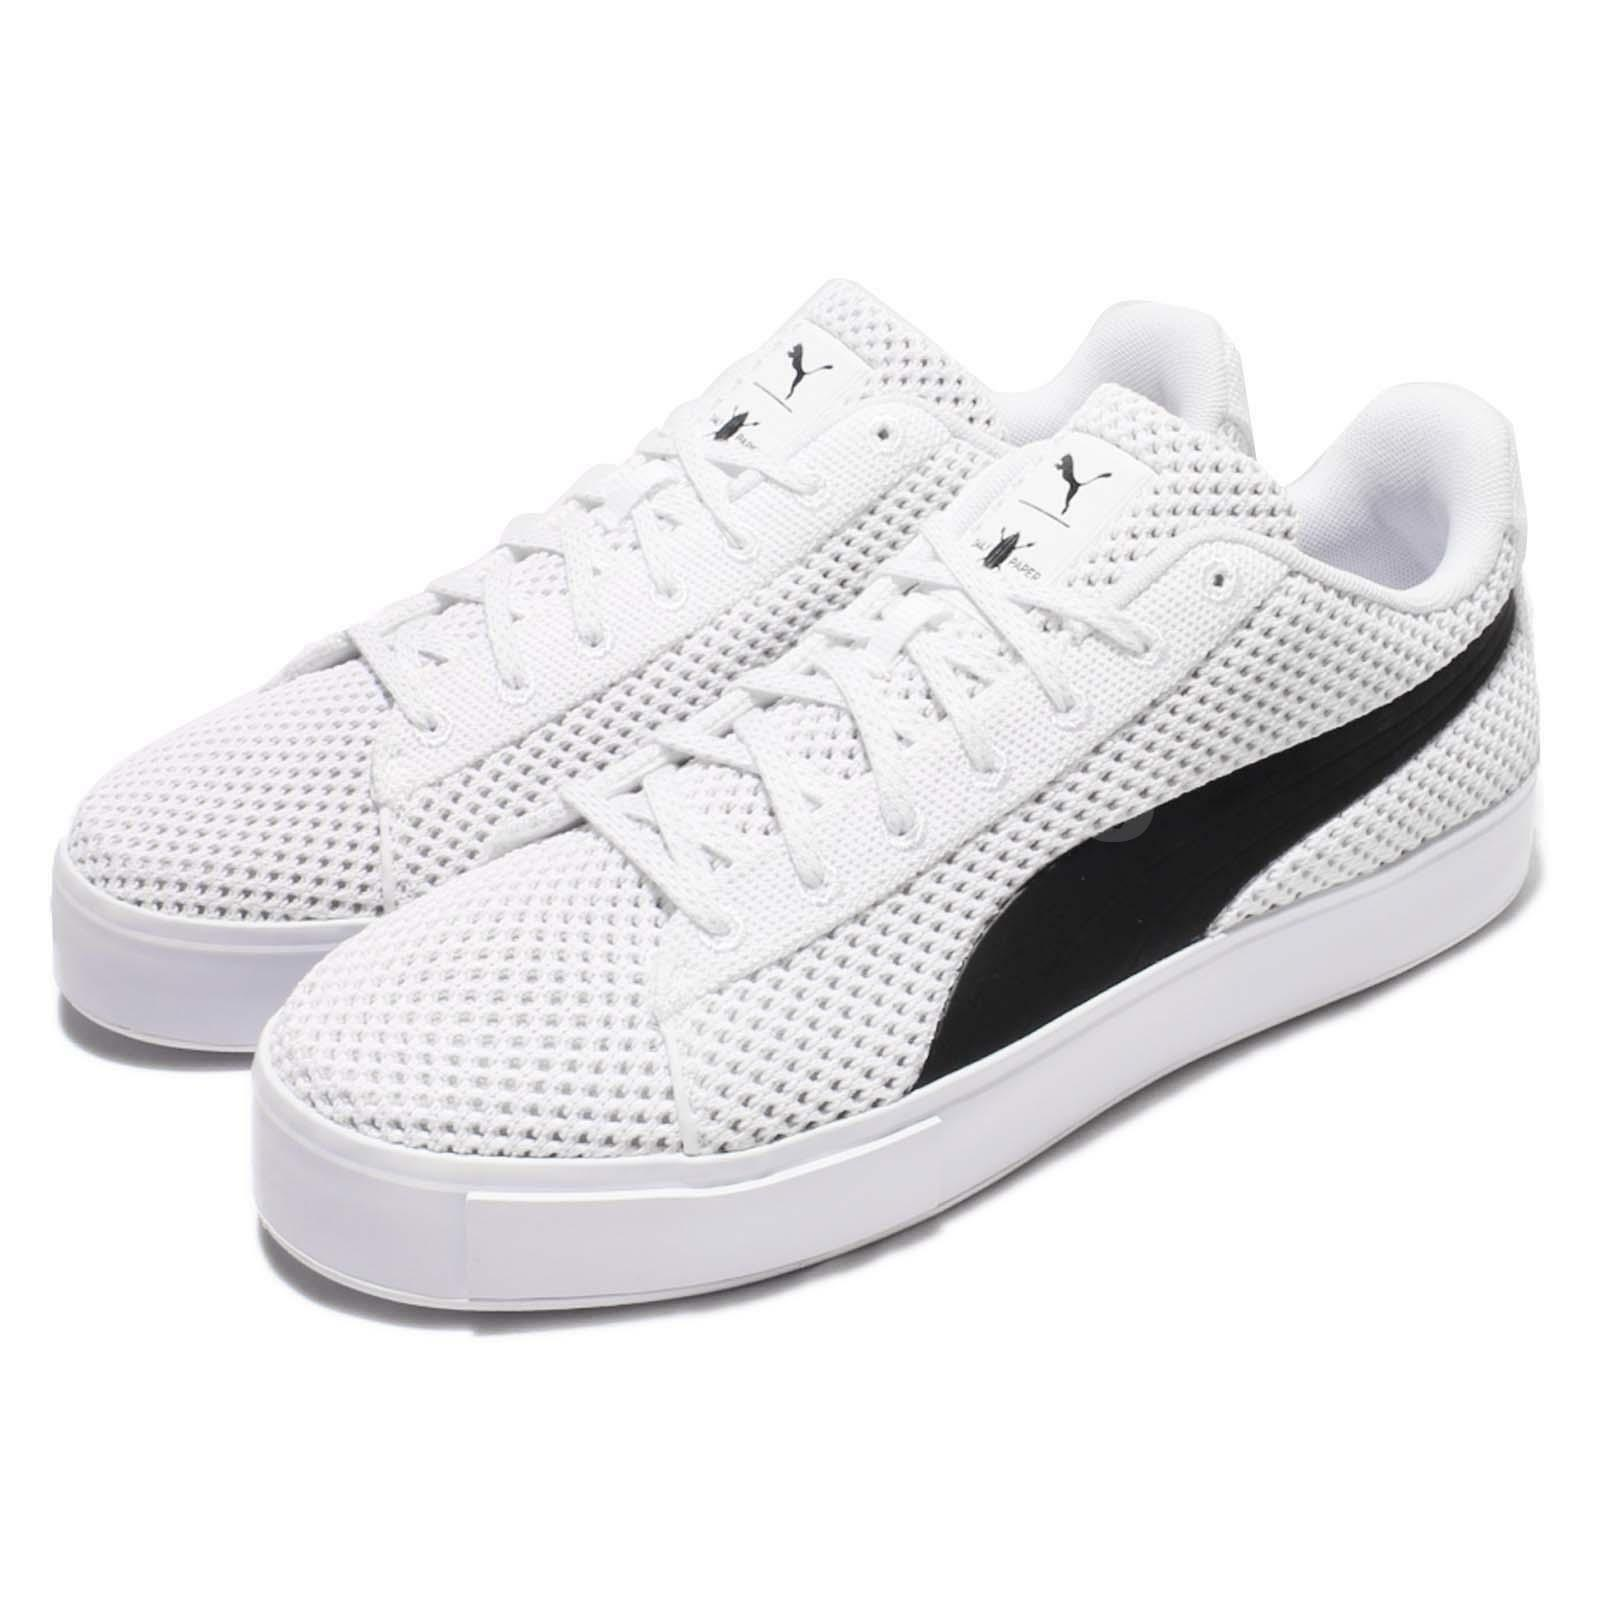 Puma X DP Court Platform K Daily Paper blanco negro Men Casual zapatos 363457-02